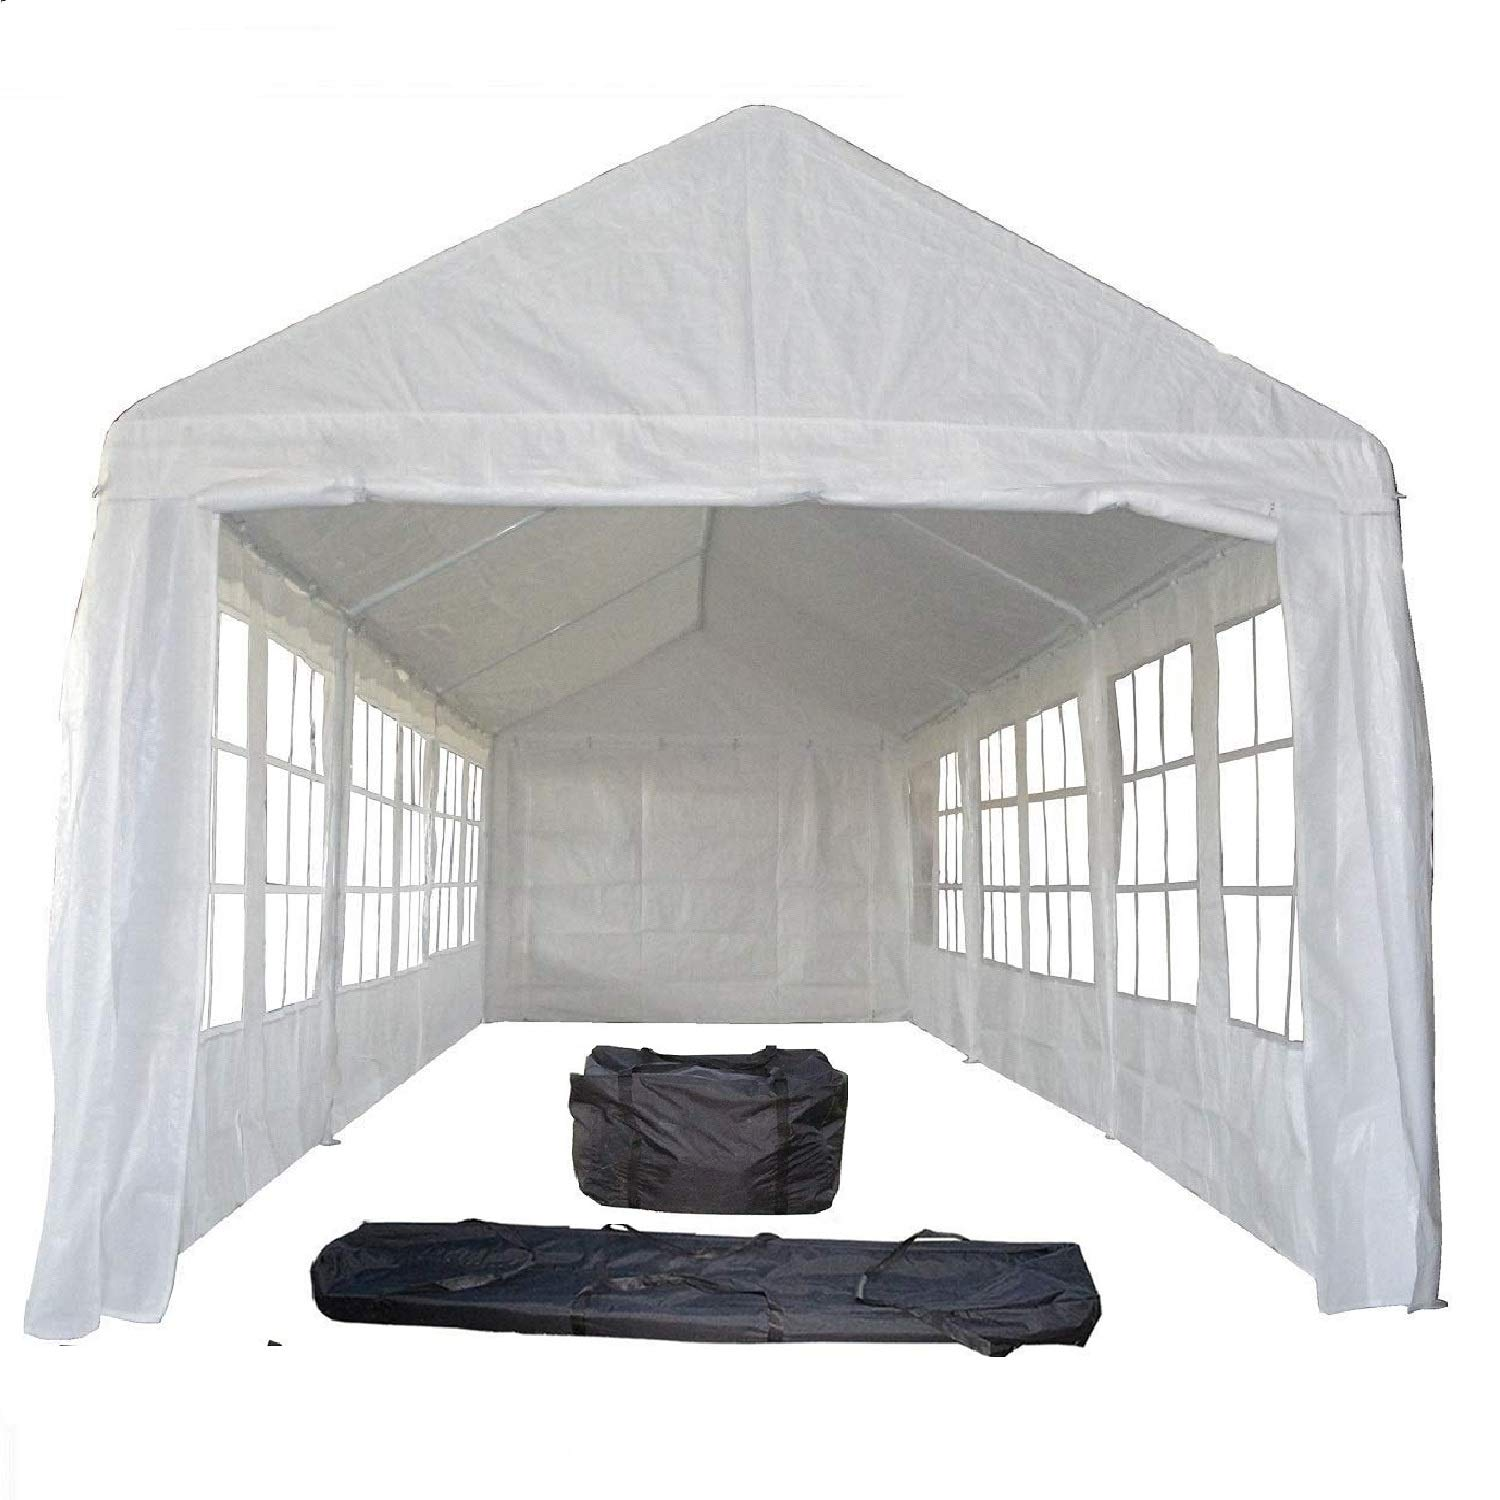 DELTA Canopies 30 x10 PE Tent White PE3010 – Wedding Party Tent Canopy Carport – with Storage Bags